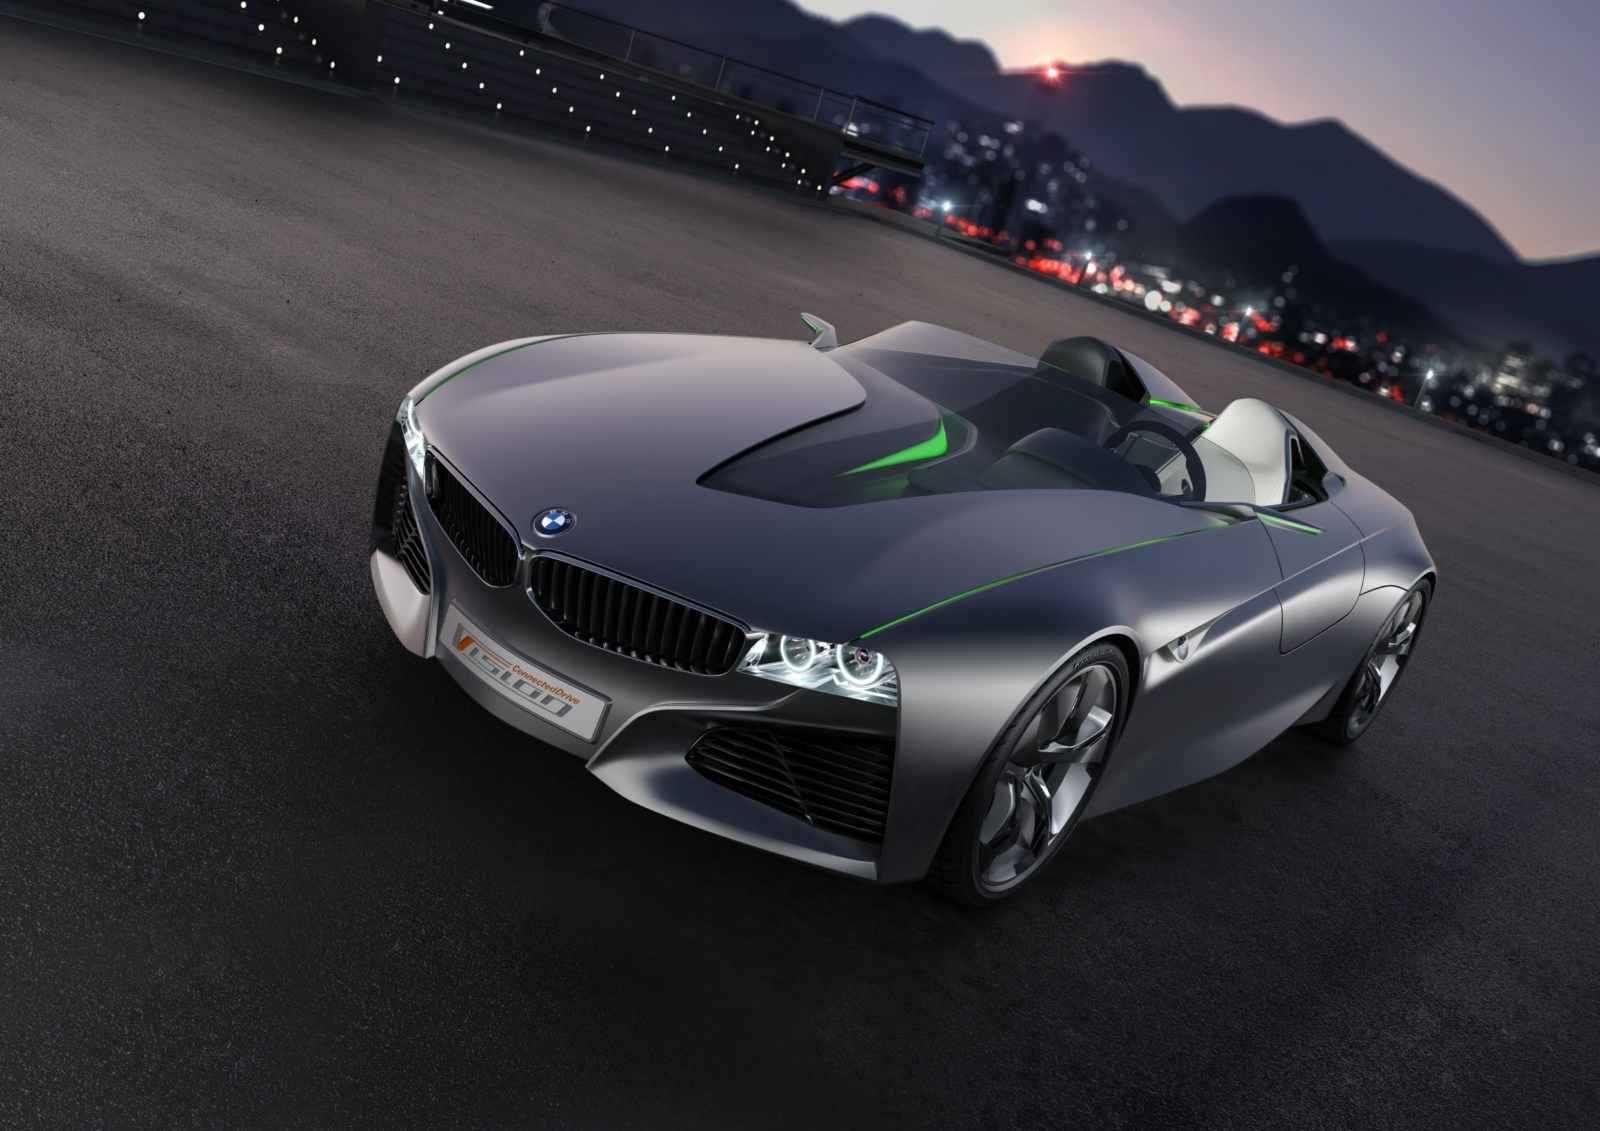 whilly bermudez for auto world international bmw concept cars bmw vision connecteddrive. Black Bedroom Furniture Sets. Home Design Ideas